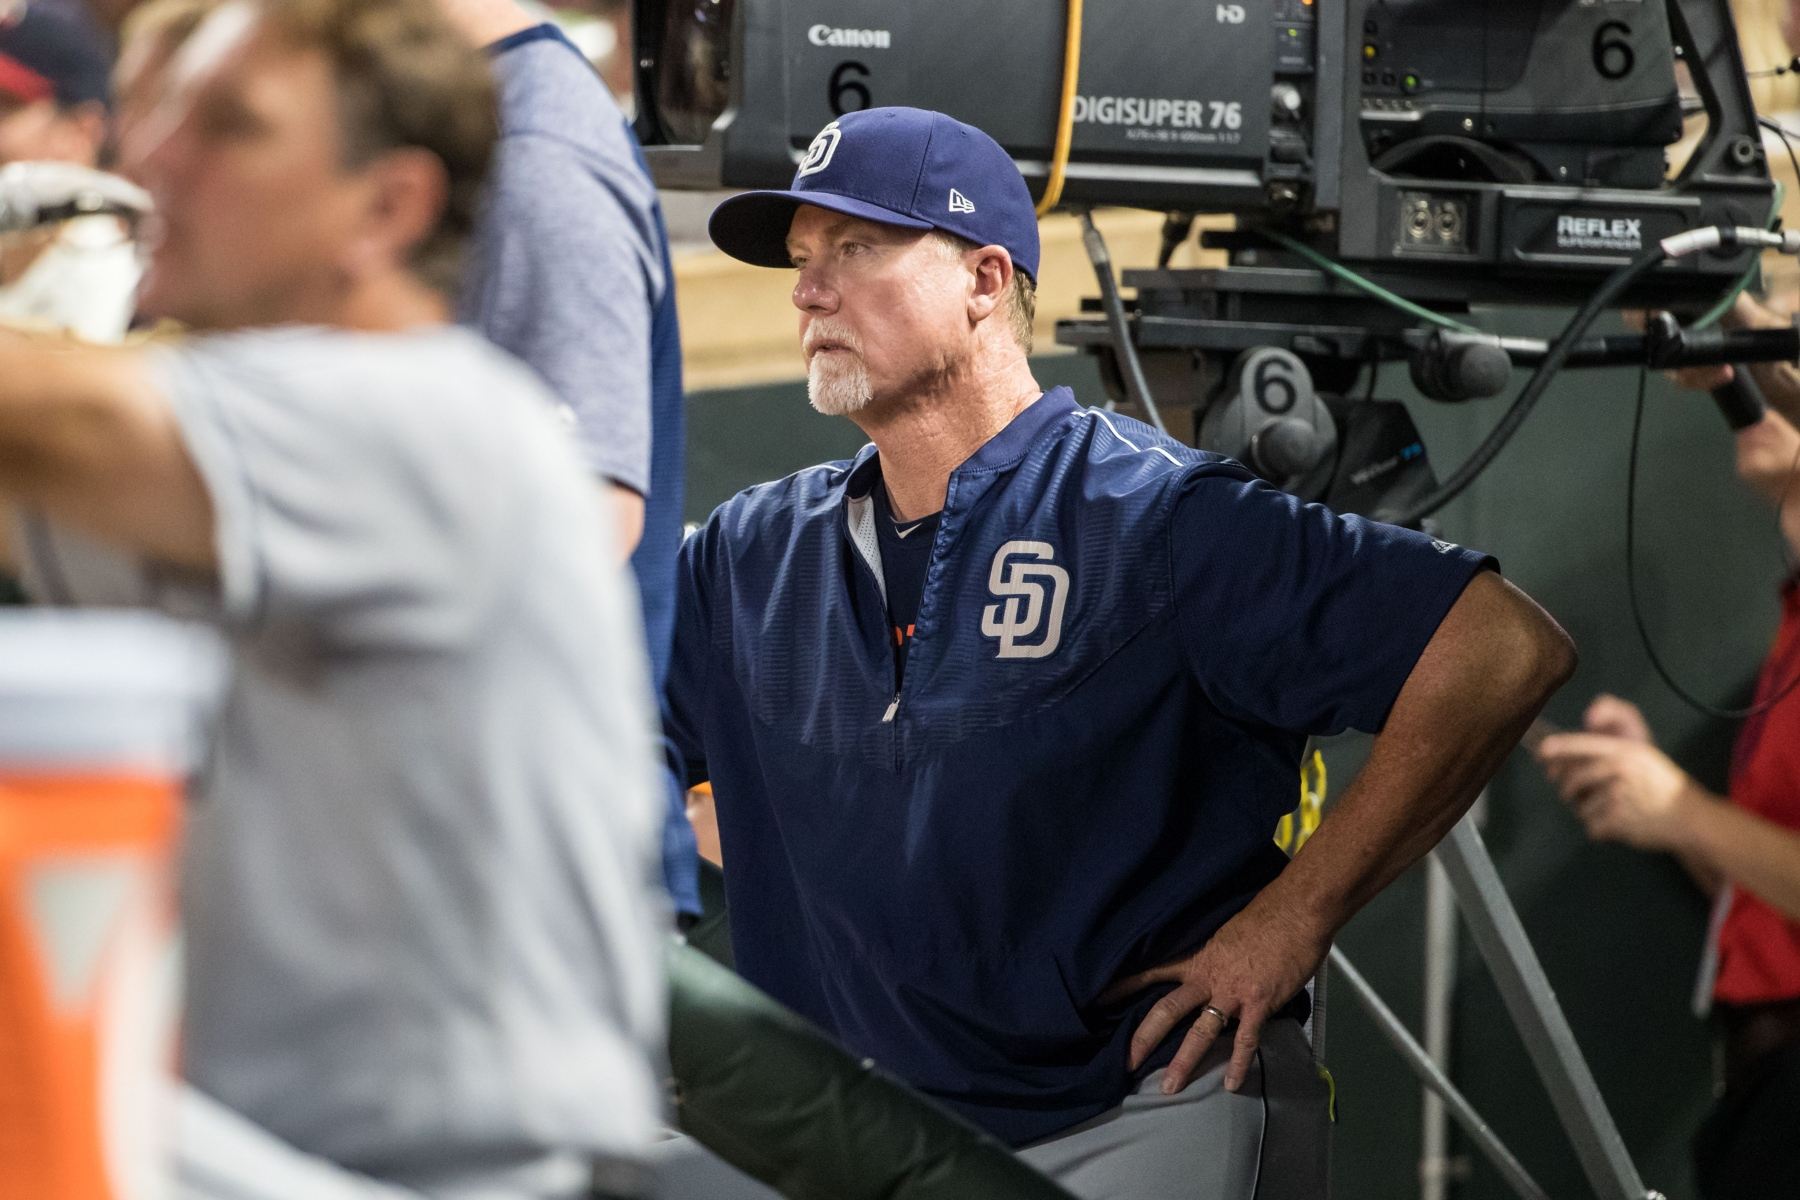 San Diego Padres hitting coach Mark McGwire #25 against the Minnesota Twins on September 13, 2017 at Target Field in Minneapolis, Minnesota. The Twins defeated the Padres 3-1. (Brace Hemmelgarn/Minnesota Twins/Getty Images)